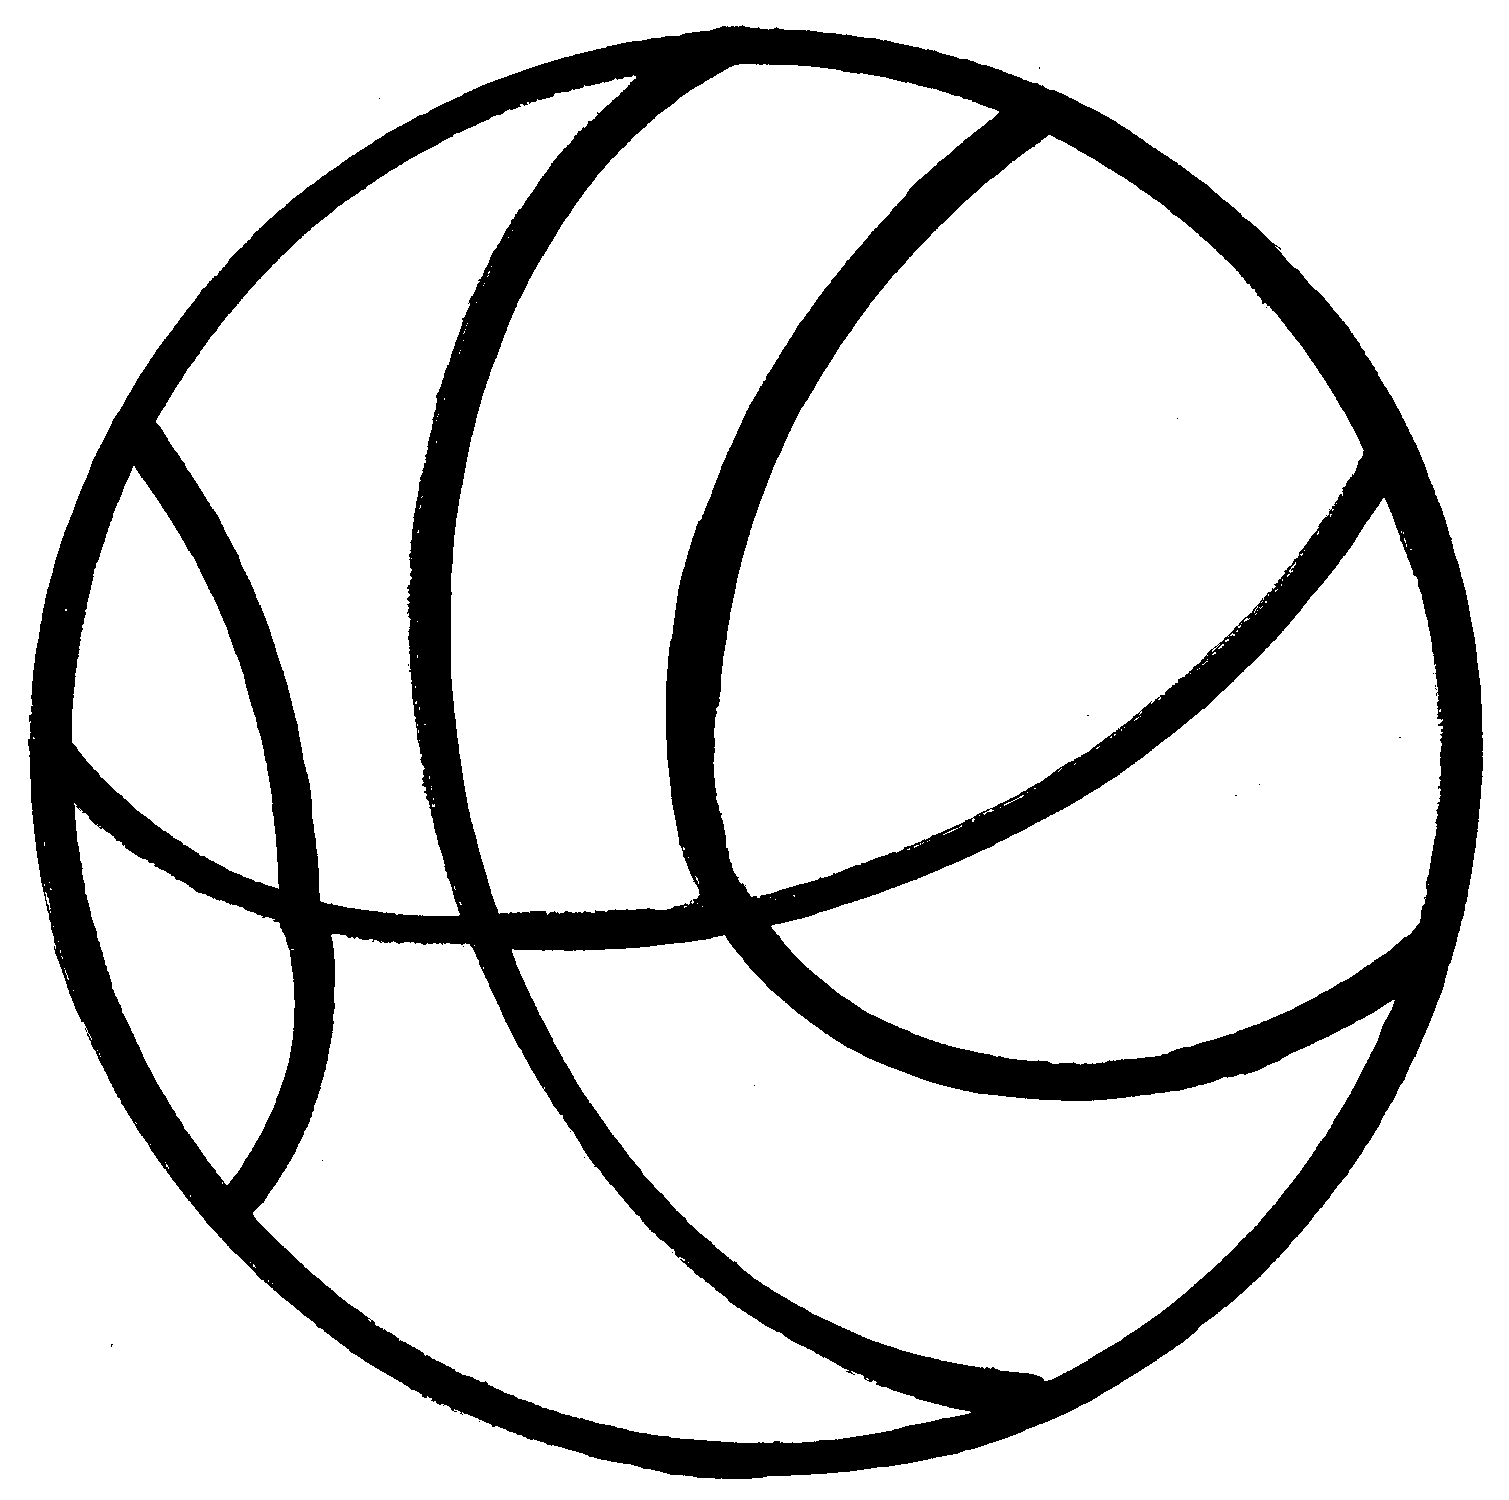 1509x1500 Basketball Black And White Basketball Hoop Clipart Black And White